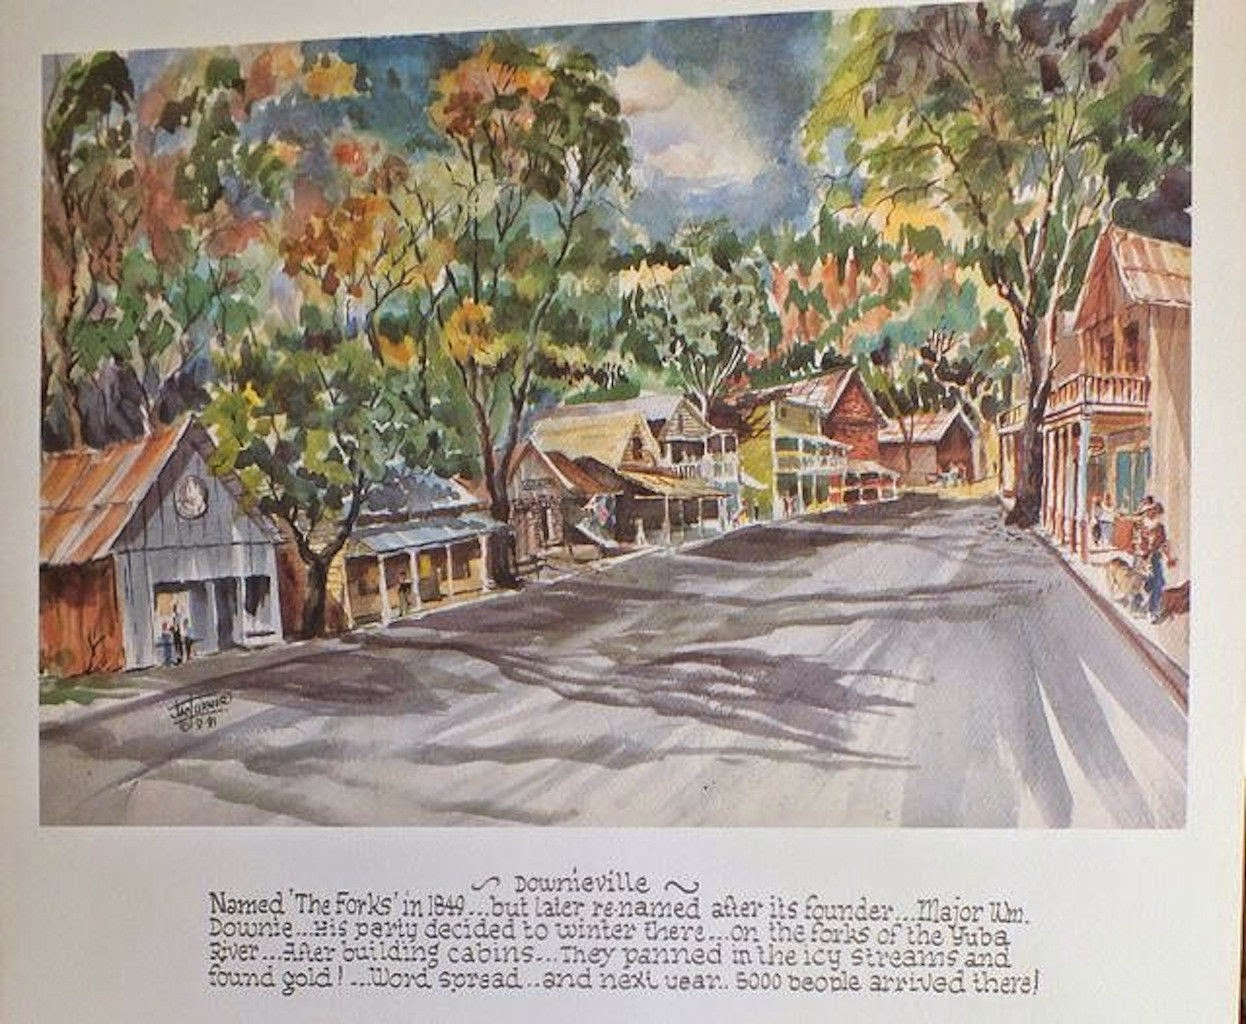 gold country girls: More Views of Jamestown California